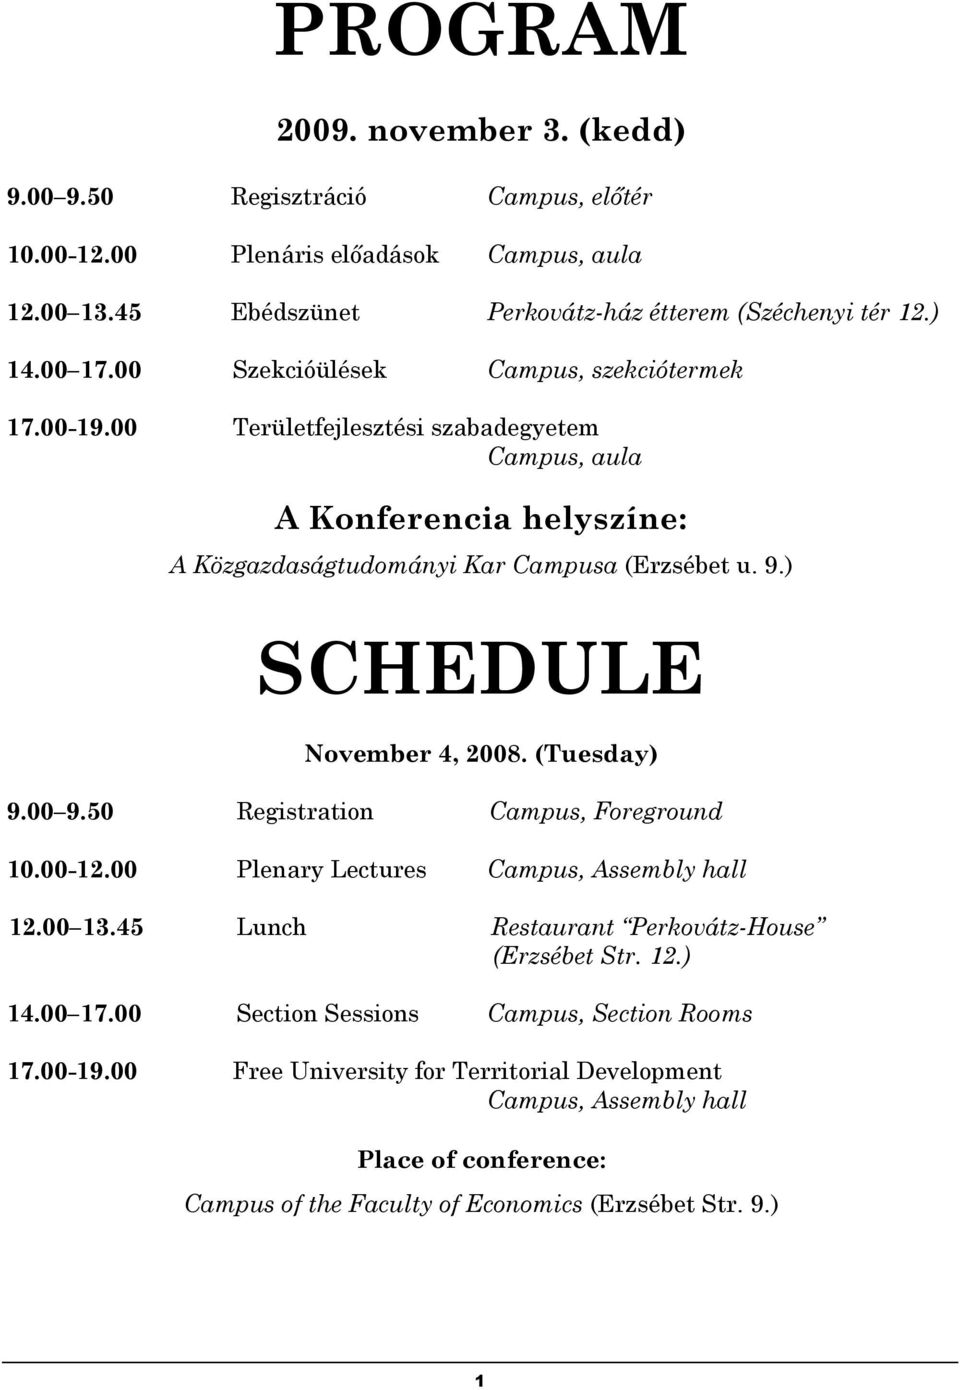 ) SCHEDULE November 4, 2008. (Tuesday) 9.00 9.50 Registration Campus, Foreground 10.00-12.00 Plenary Lectures Campus, Assembly hall 12.00 13.